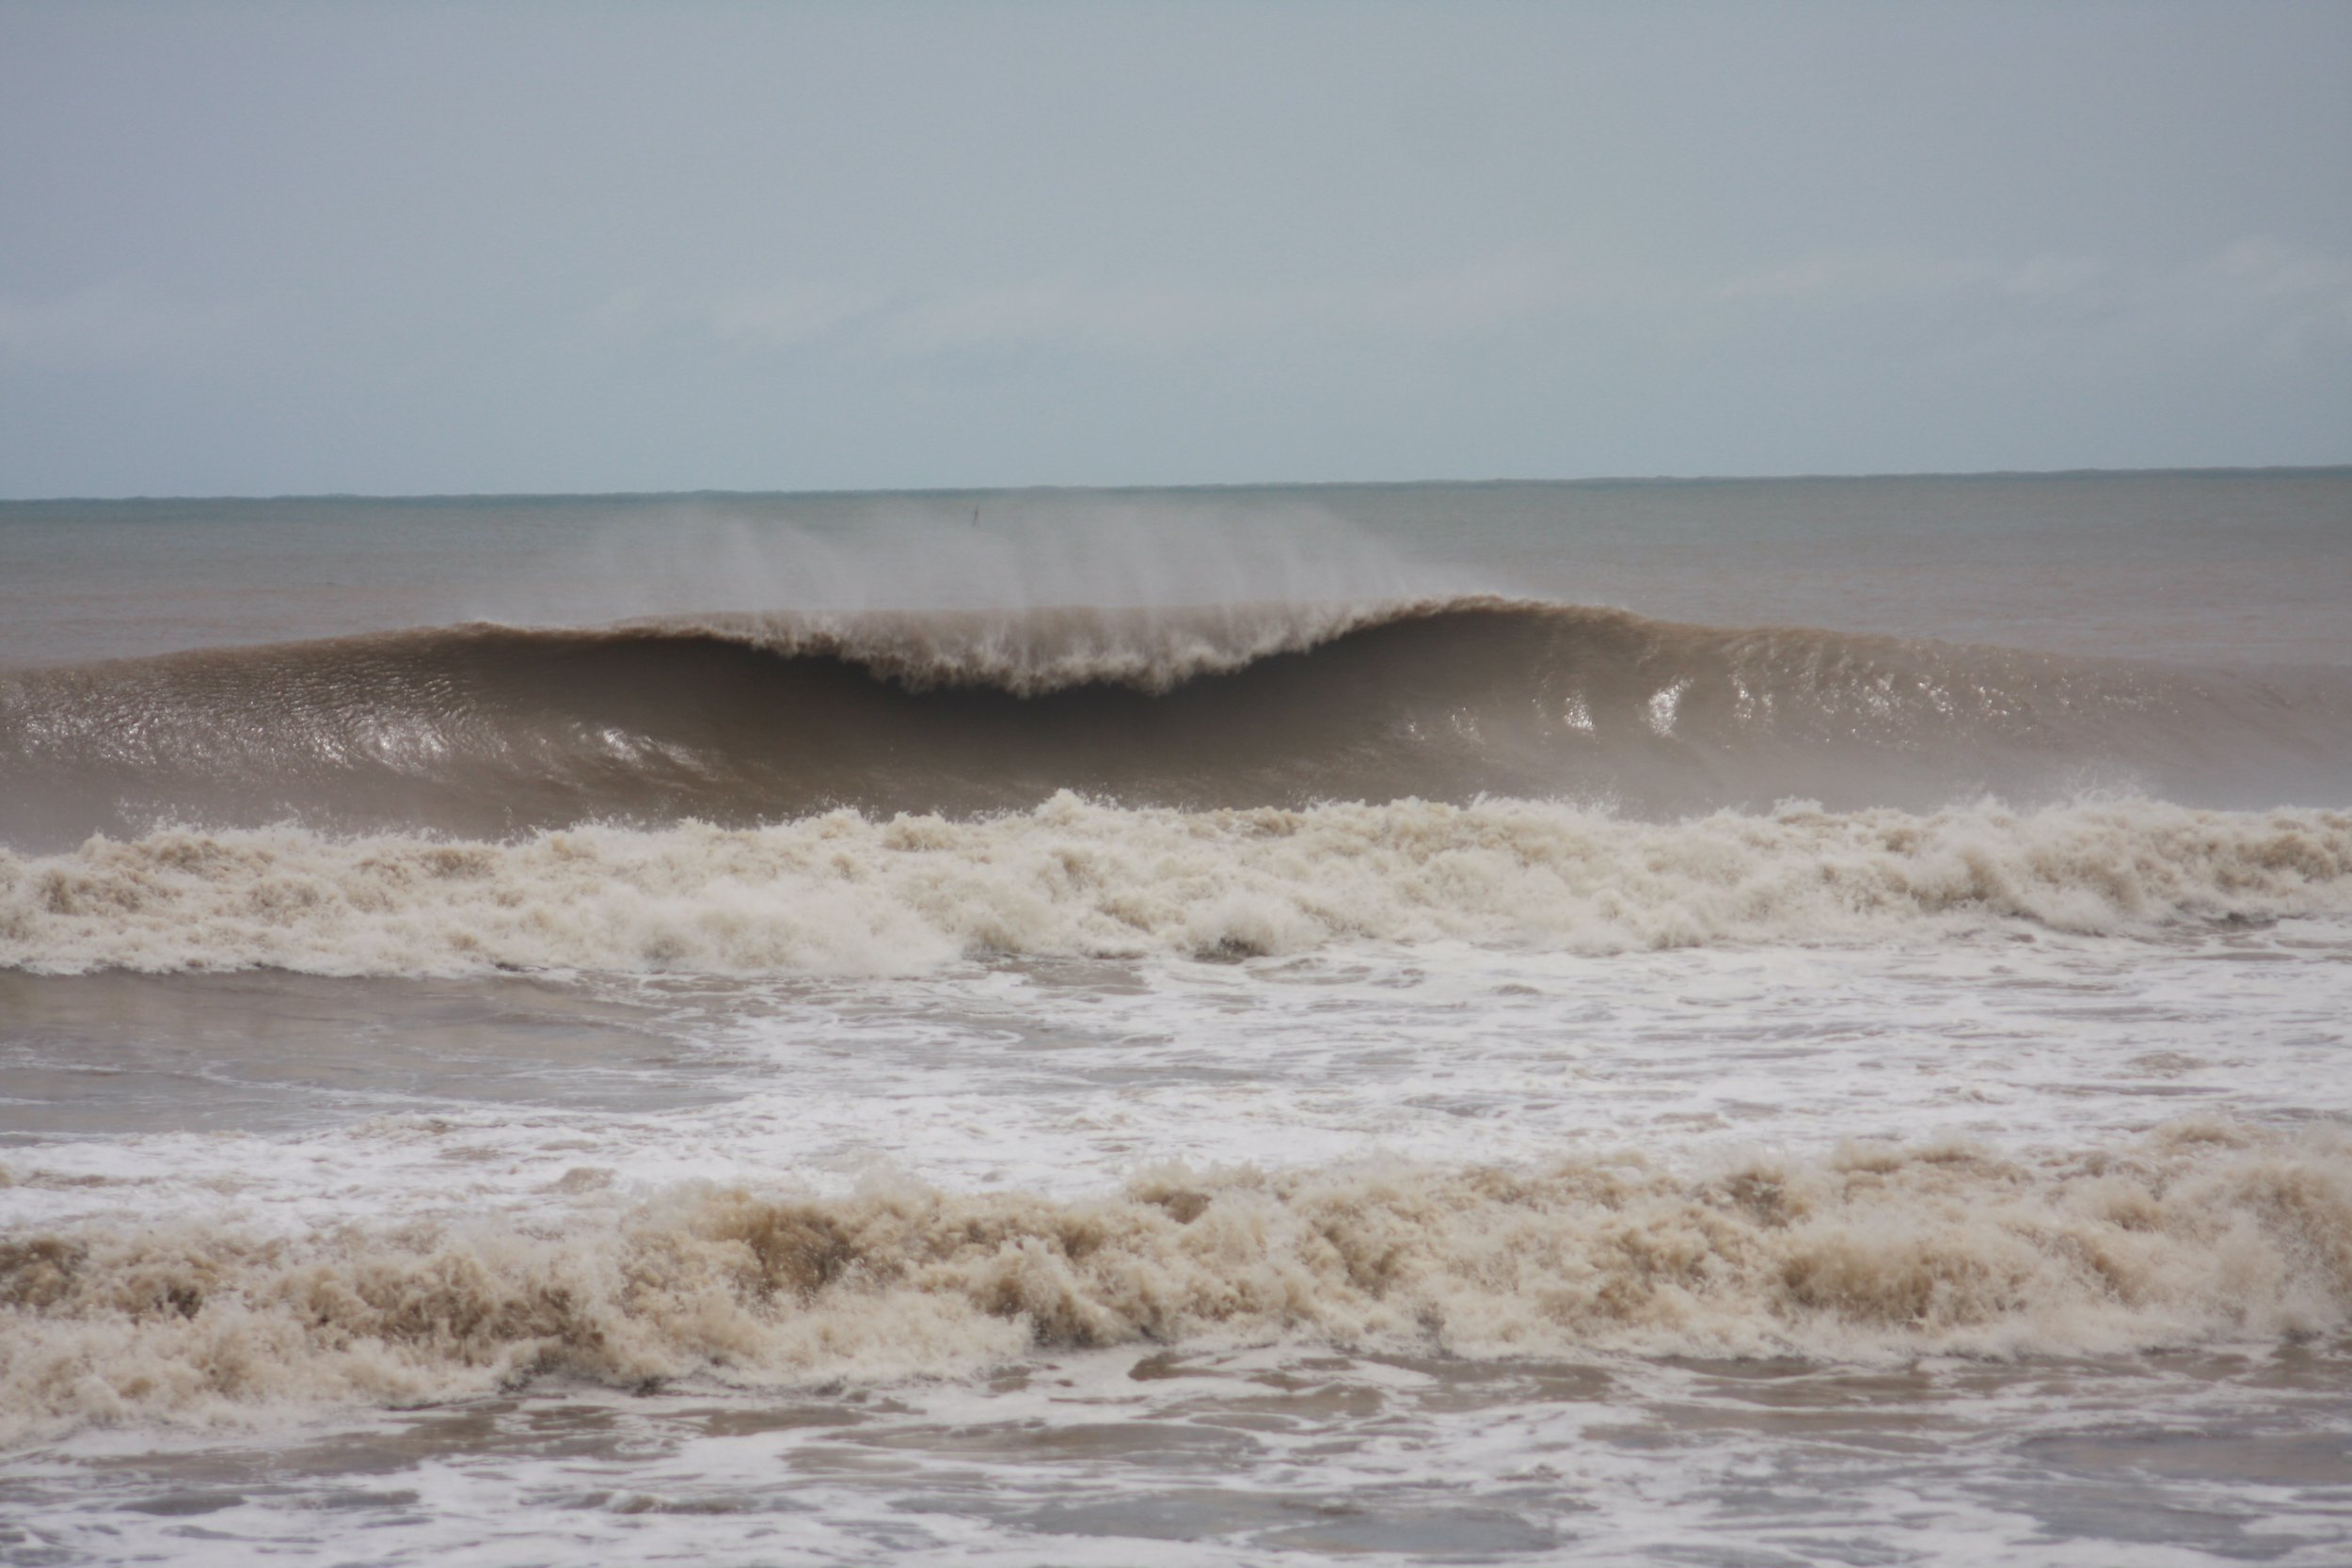 Despite the stormy weather, perfect A-frame waves can be still be seen. This is probably every surfer's dream even with the muddy storm water.